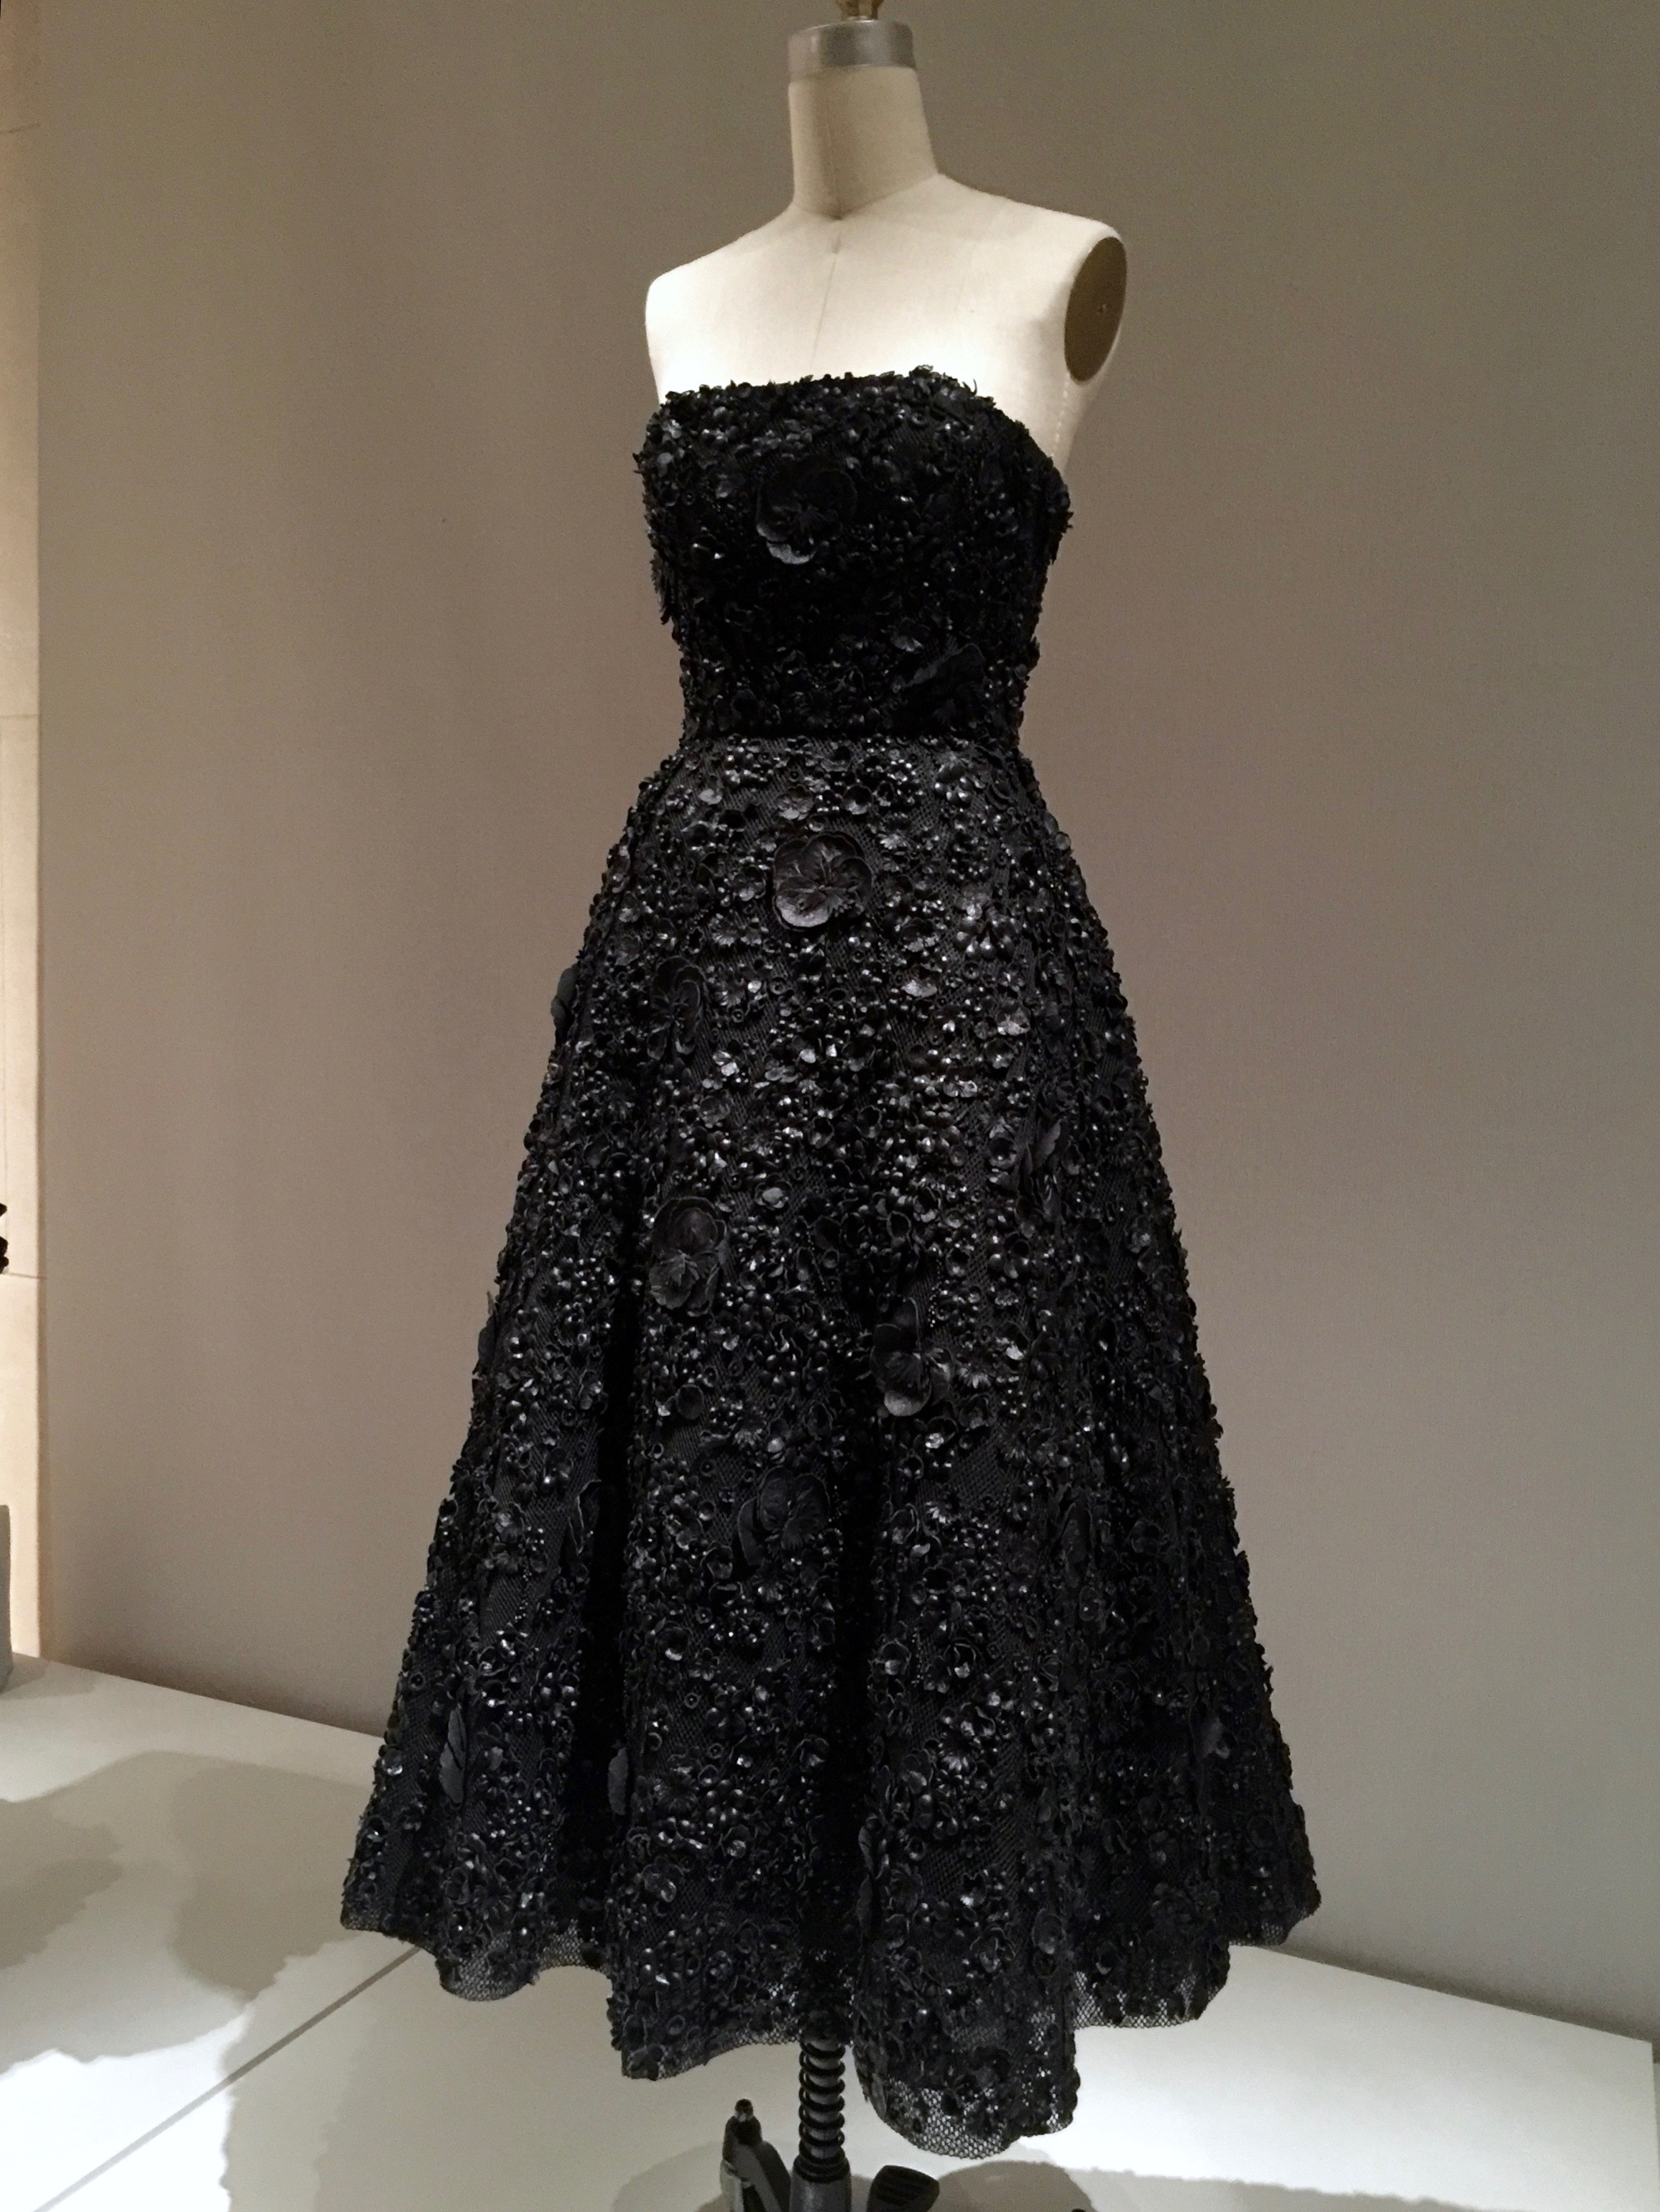 HOUSE OF DIOR, Raf Simons DRESS, Autumn/Winter 2013-14, pret-a-porter   Machine-sewn black silk taffeta with overlay of black cotton-synthetic mesh, hand-embroidered with leather artificial flowers and black beads